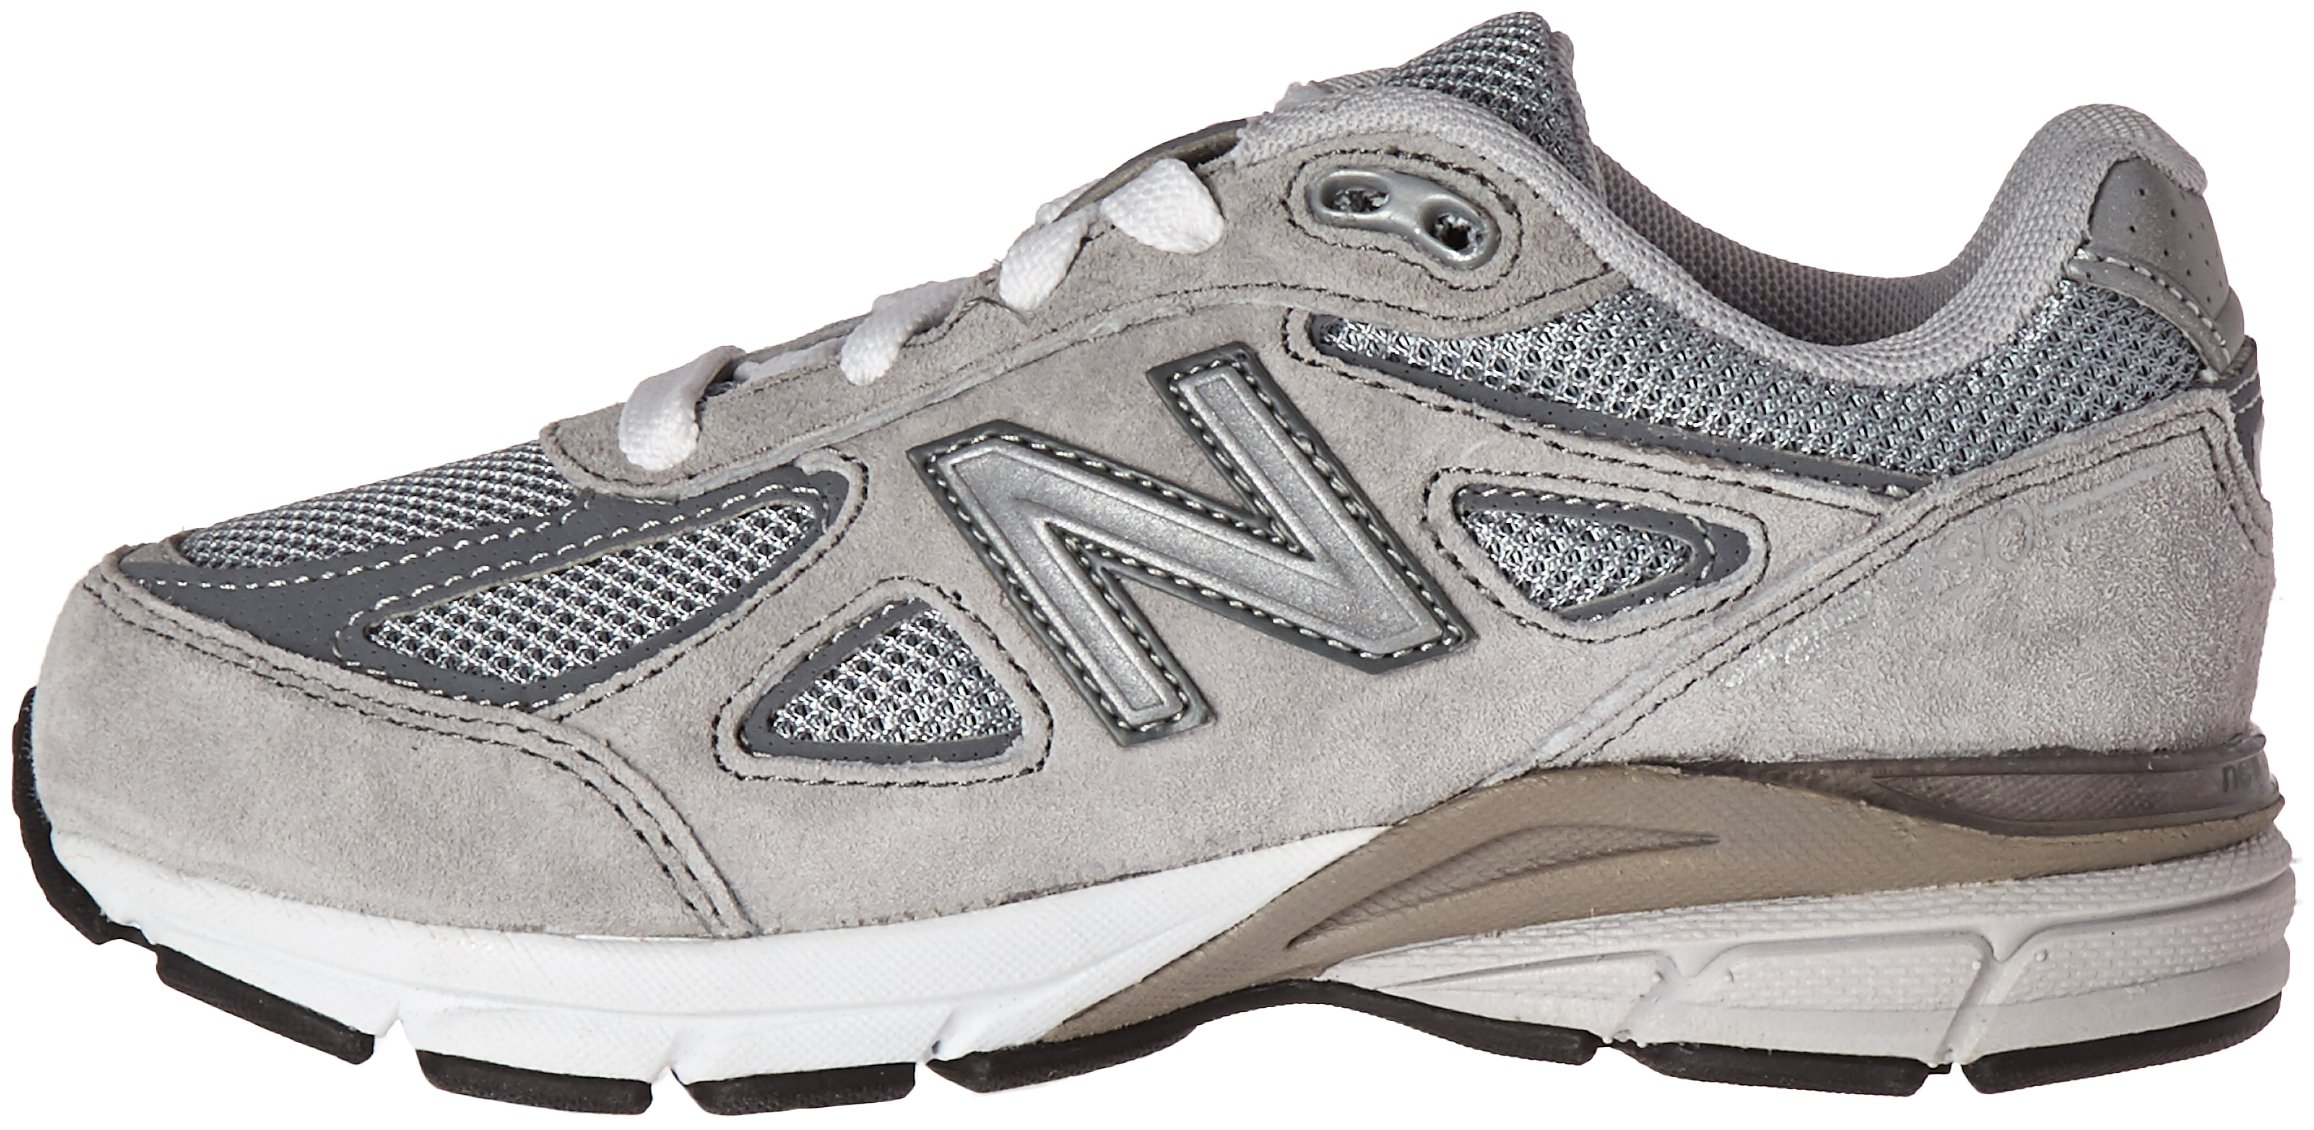 New Balance KJ990V4 Running Shoe (Little Kid/Big Kid), Grey/Grey, 1.5 M US Little Kid by New Balance (Image #5)